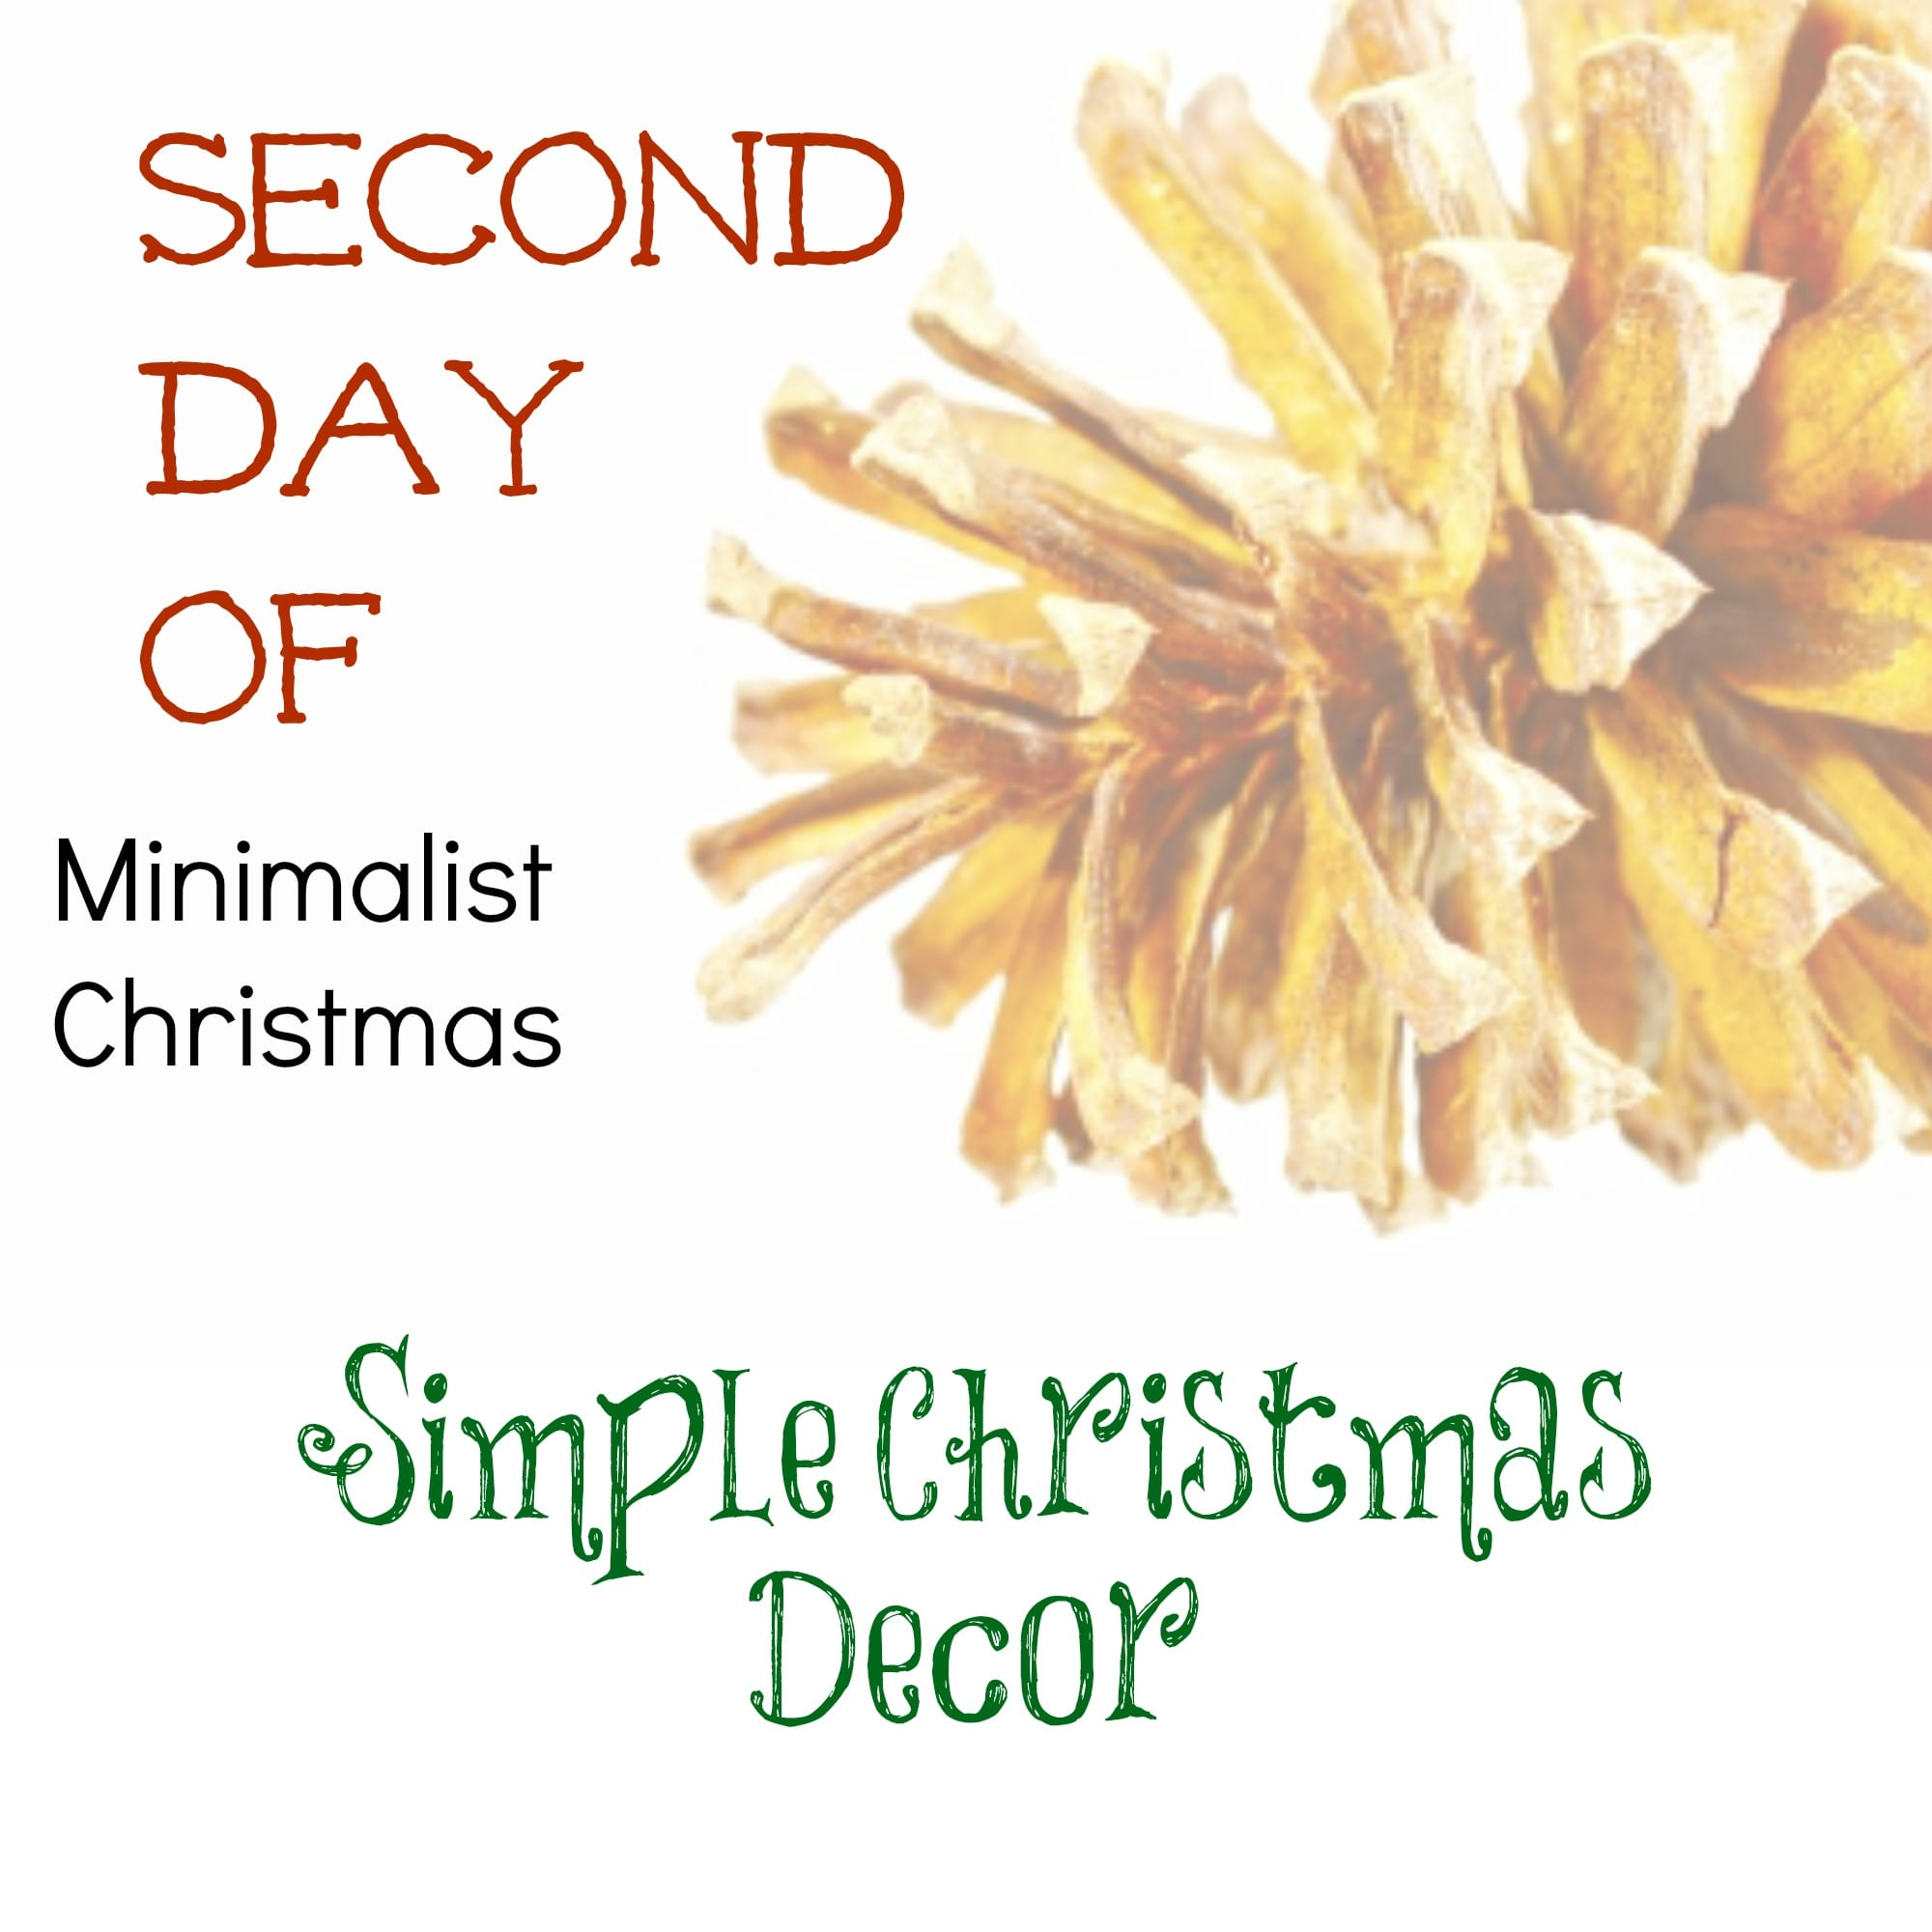 Second day of minimalist christmas simple christmas decor for Minimalist christmas decor